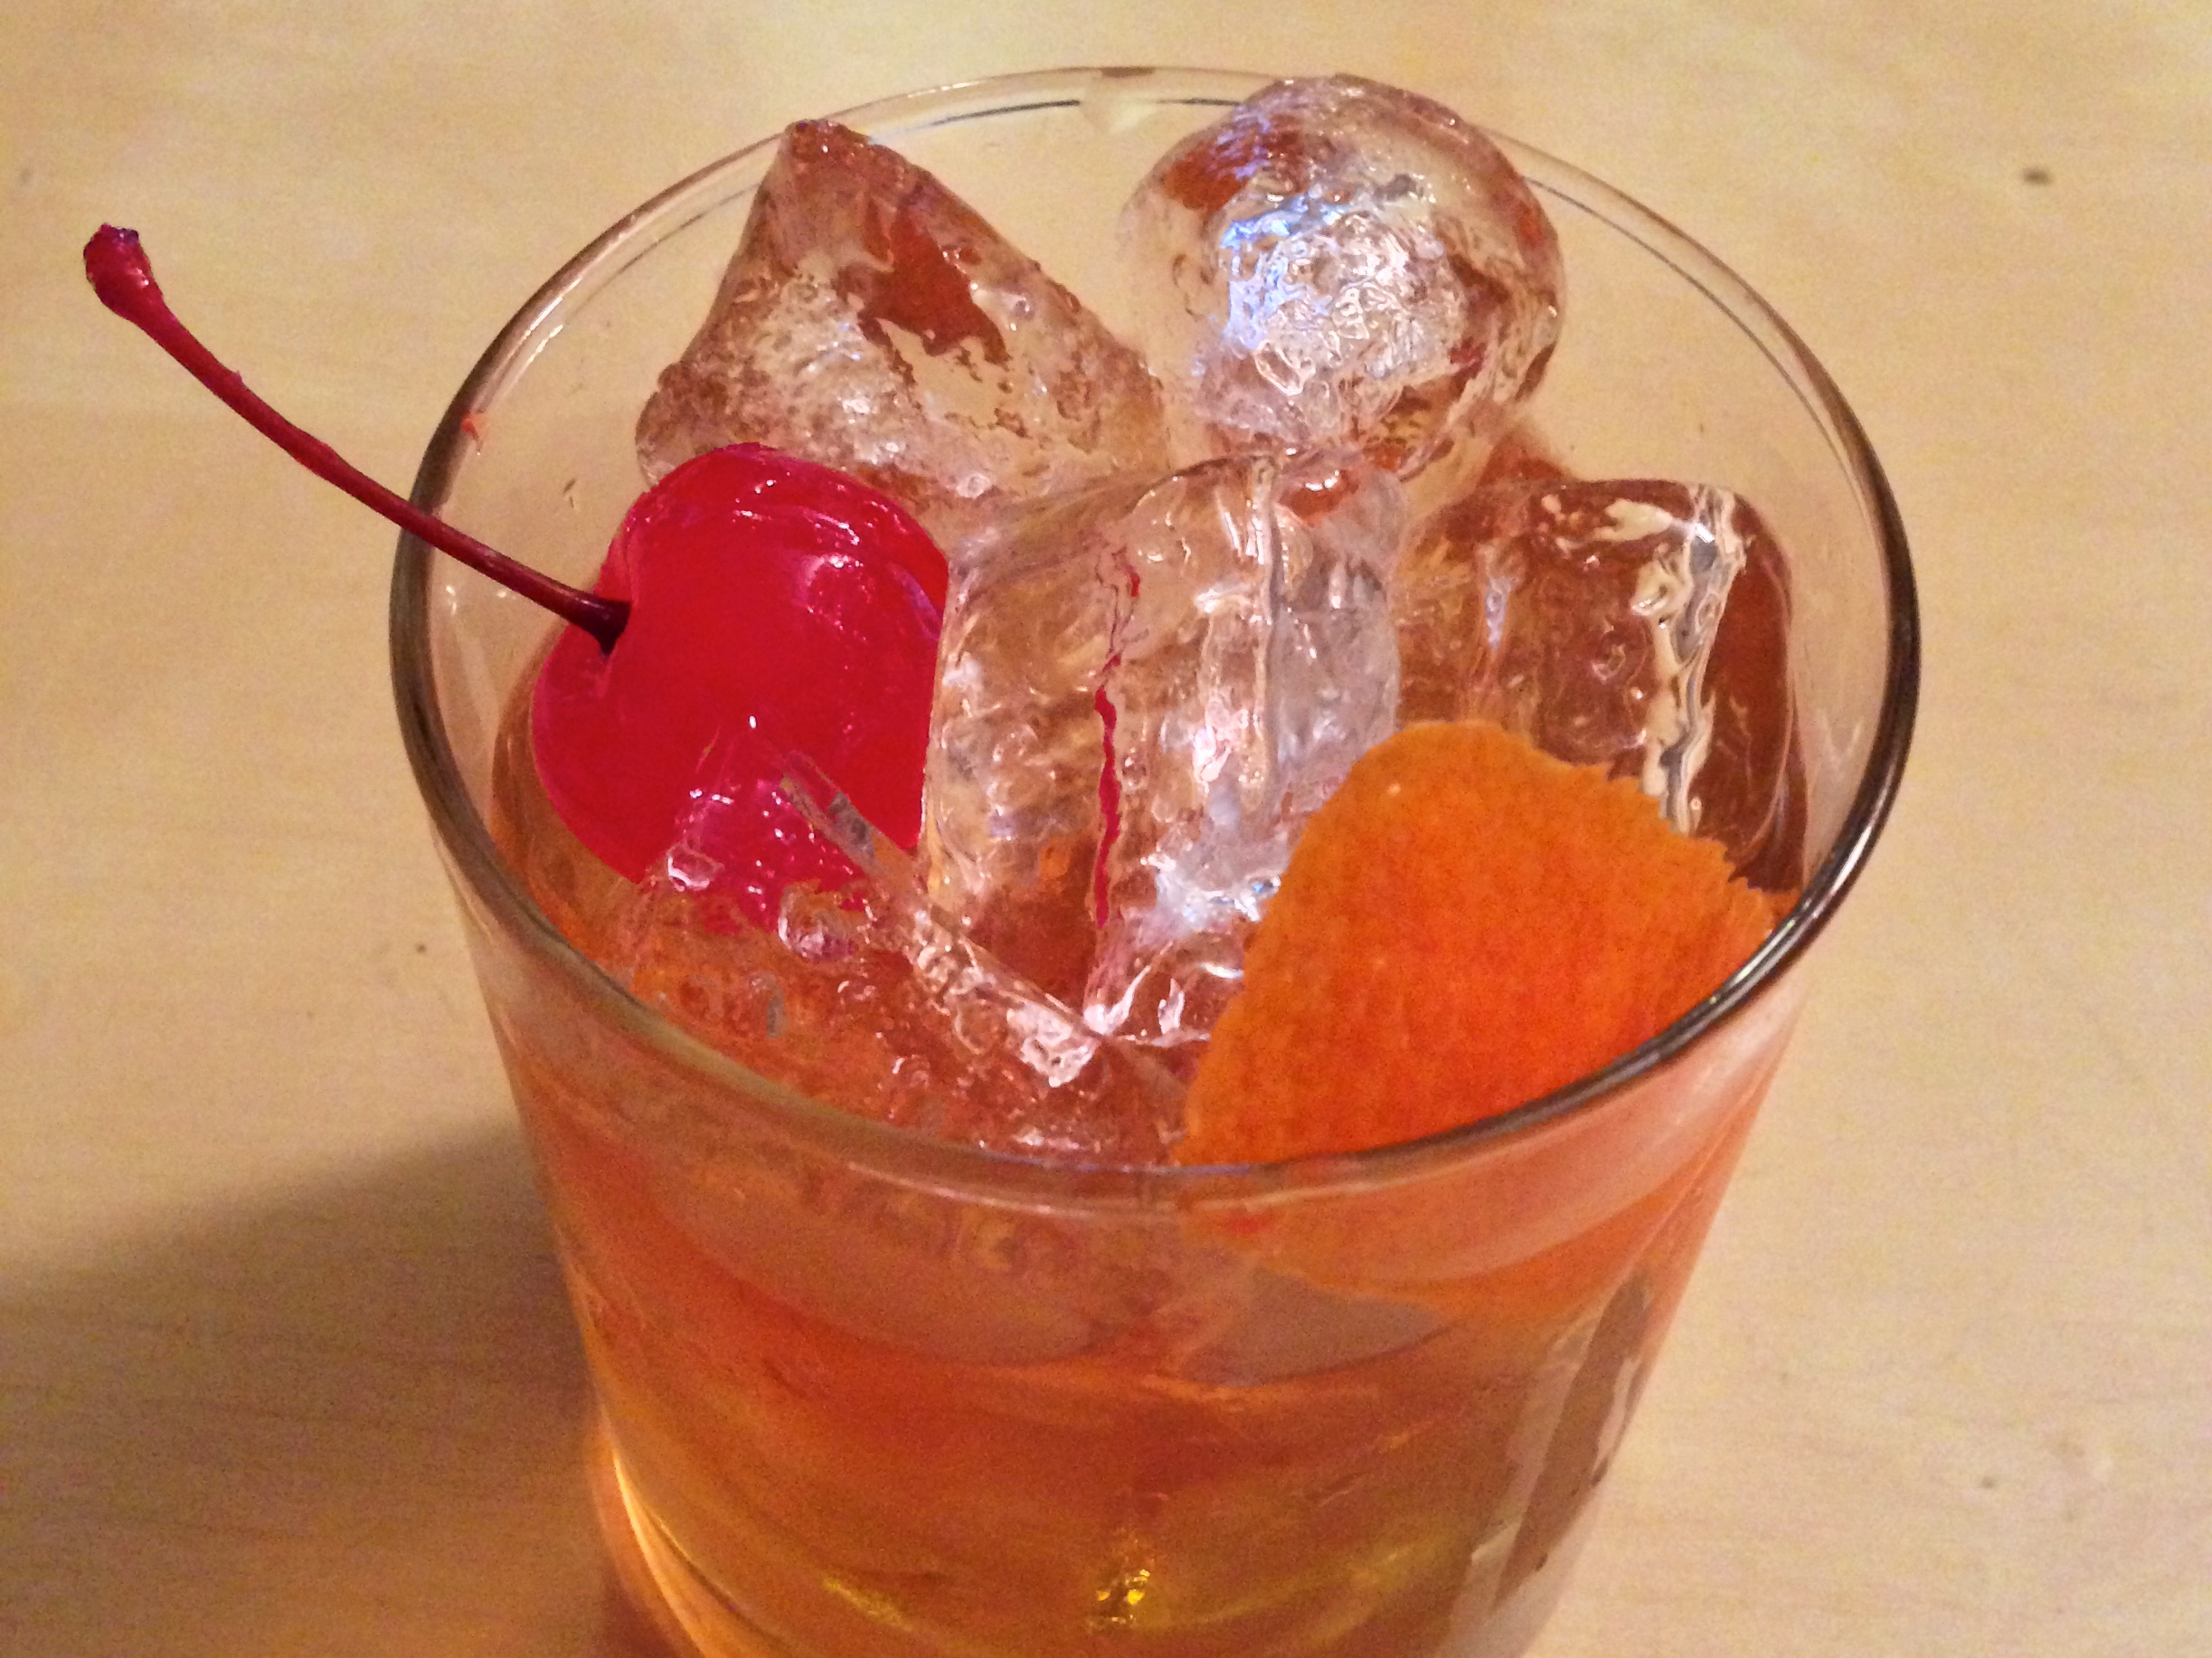 Mixology 101: The Oldfashioned